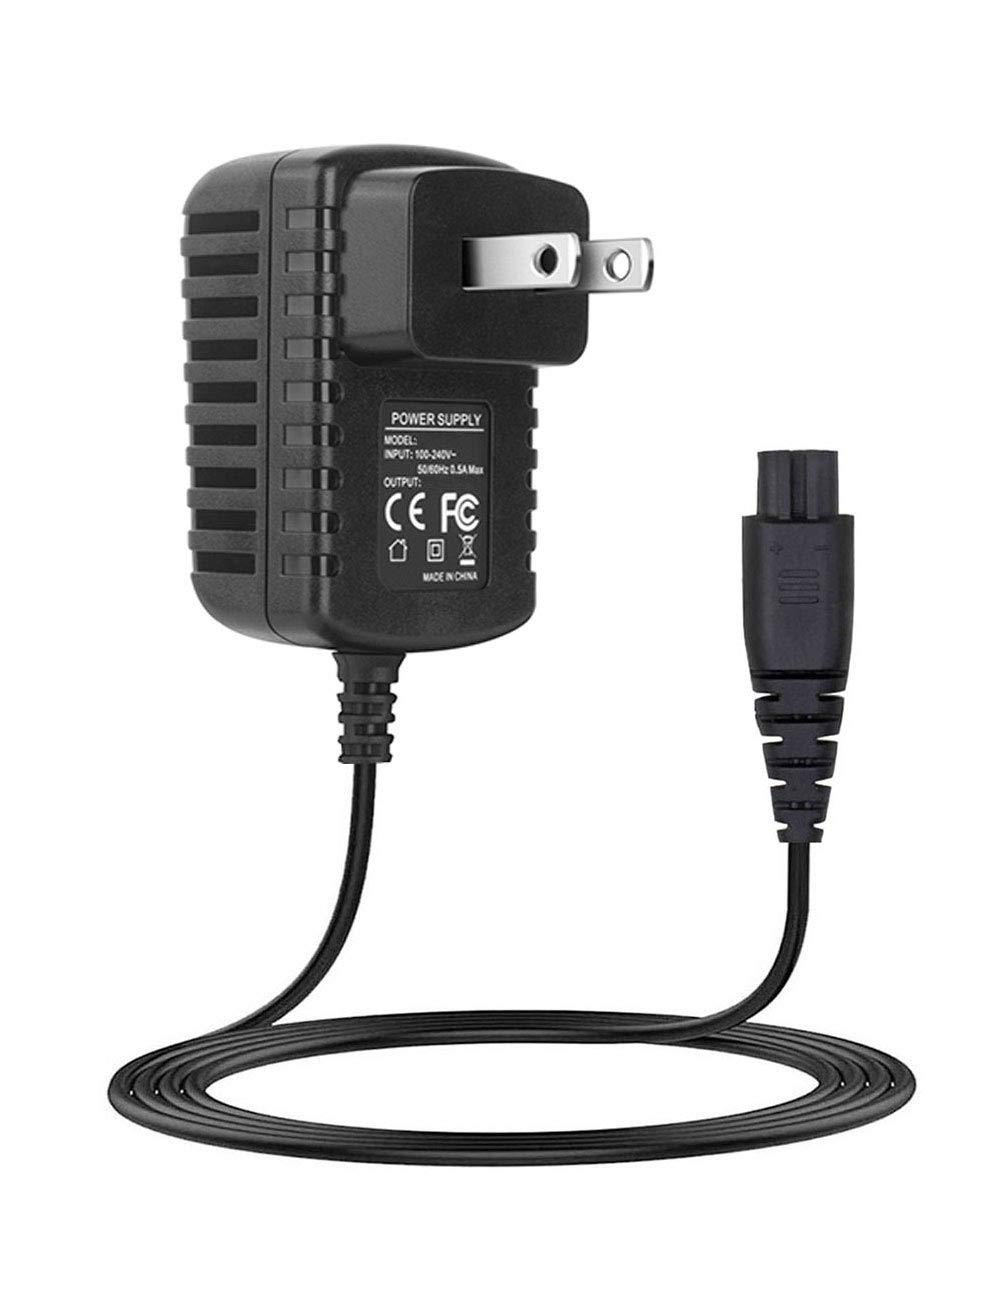 Power Cord for Remington Shaver HC4250 HC5870 PF7500 PF7600 Replacement Charger for Remington Razor PG6170 PG6250 4.5ft Extra Long Charging Cord for PF7600 F8 Comfort Series XR1400 PR1240